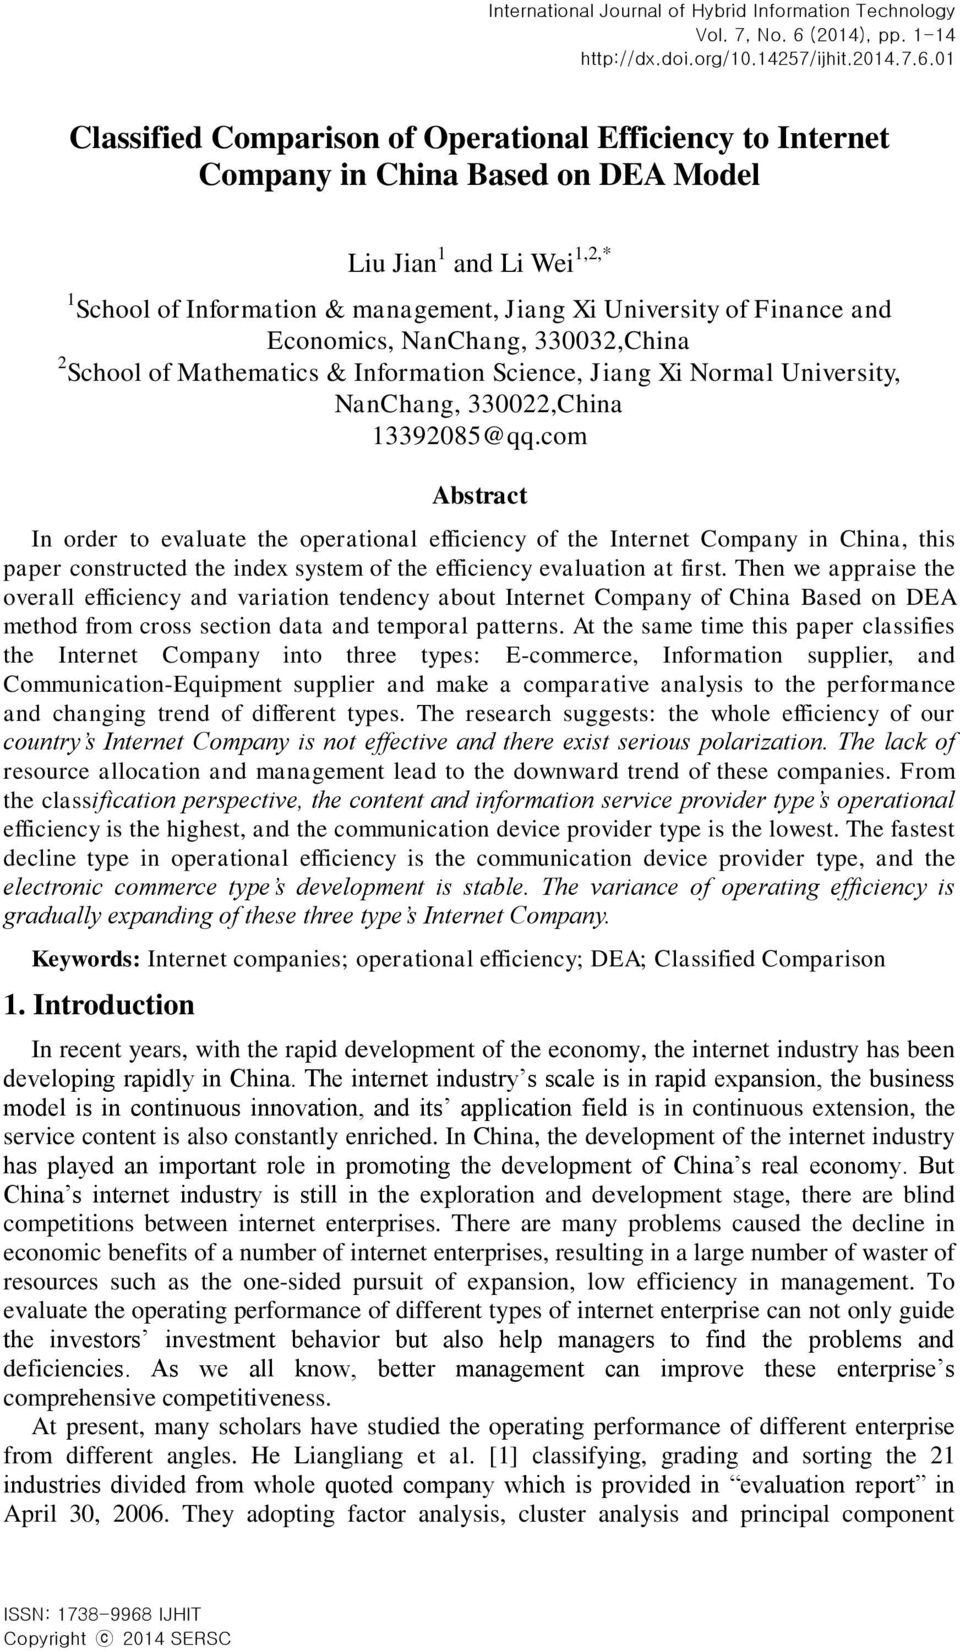 Economics, NanChang, 330032,China 2 School of Mathematics & Information Science, Jiang Xi Normal University, NanChang, 330022,China 13392085@qq.